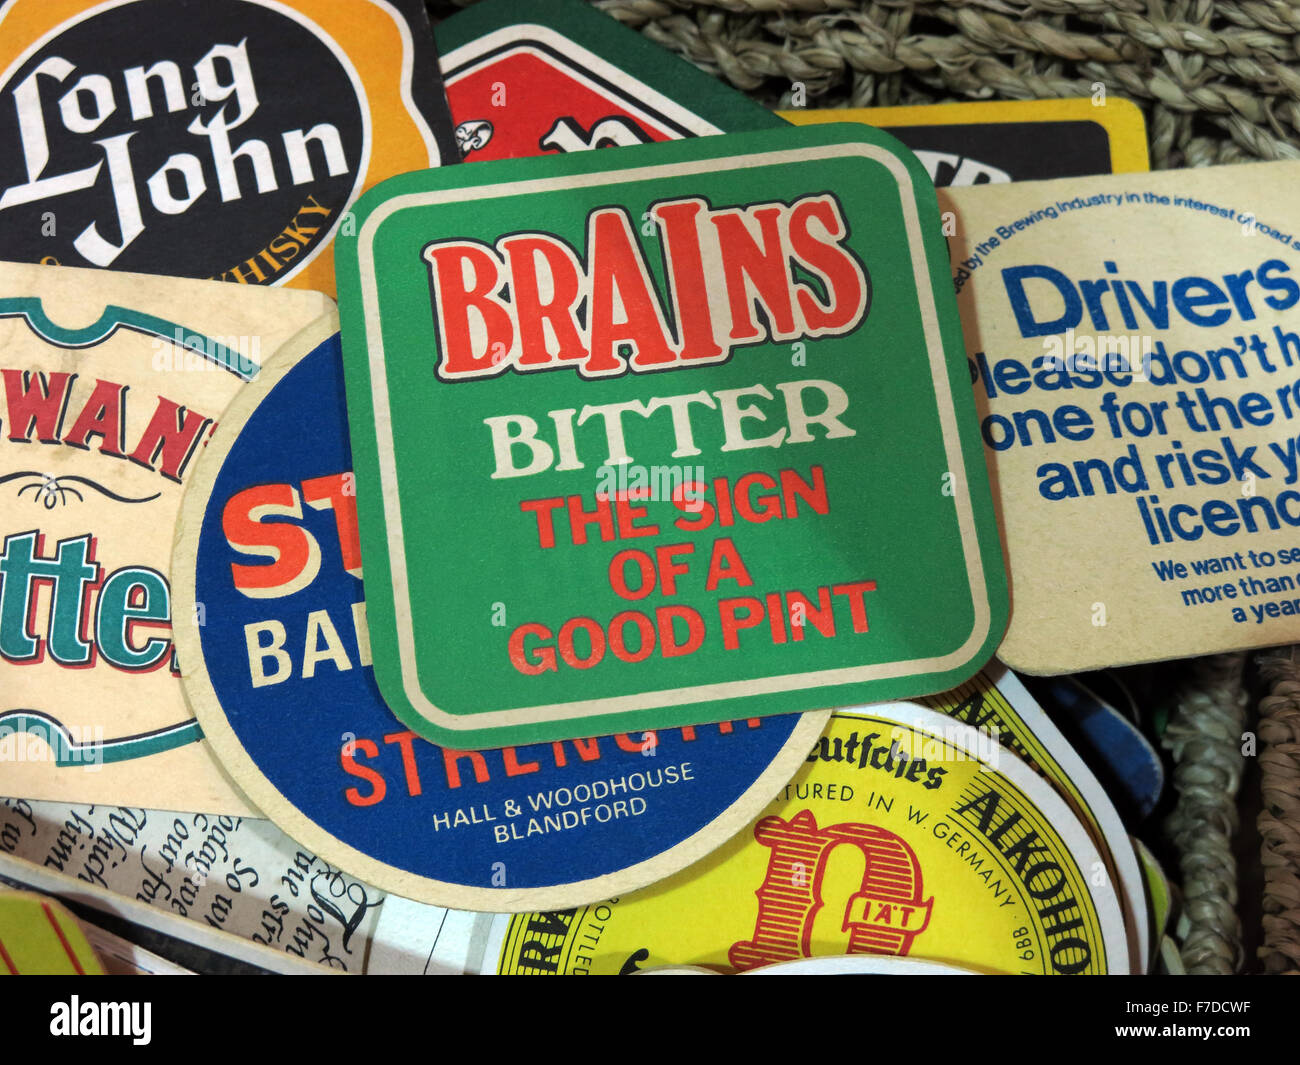 British,beer,drip,mats,from,small,smaller,regional,region,local,breweries,English,England,Wales,welsh,coaster,coasters,adverts,PR,advertising,advertising,CAMRA,beers,breweries,brewery,brewing,alcohol,bier,biers,Drip mats,Beer mats,Beer mat,Drip mat,Drip Mat,GoTonySmith,driver,drivers,drinking,and,driving,bier,biers,drinking,driving,Drivers,please,dont,have,one,for,the,road,risk,your,licence,license,breath,test,limit,breathalyzer,or,breathalyser,beverage,coaster,beermat,public,house,houses,pub,bar,branded,brand,abuse,Buy Pictures of,Buy Images Of,Long John,Drinking and driving,breathe test,Public House